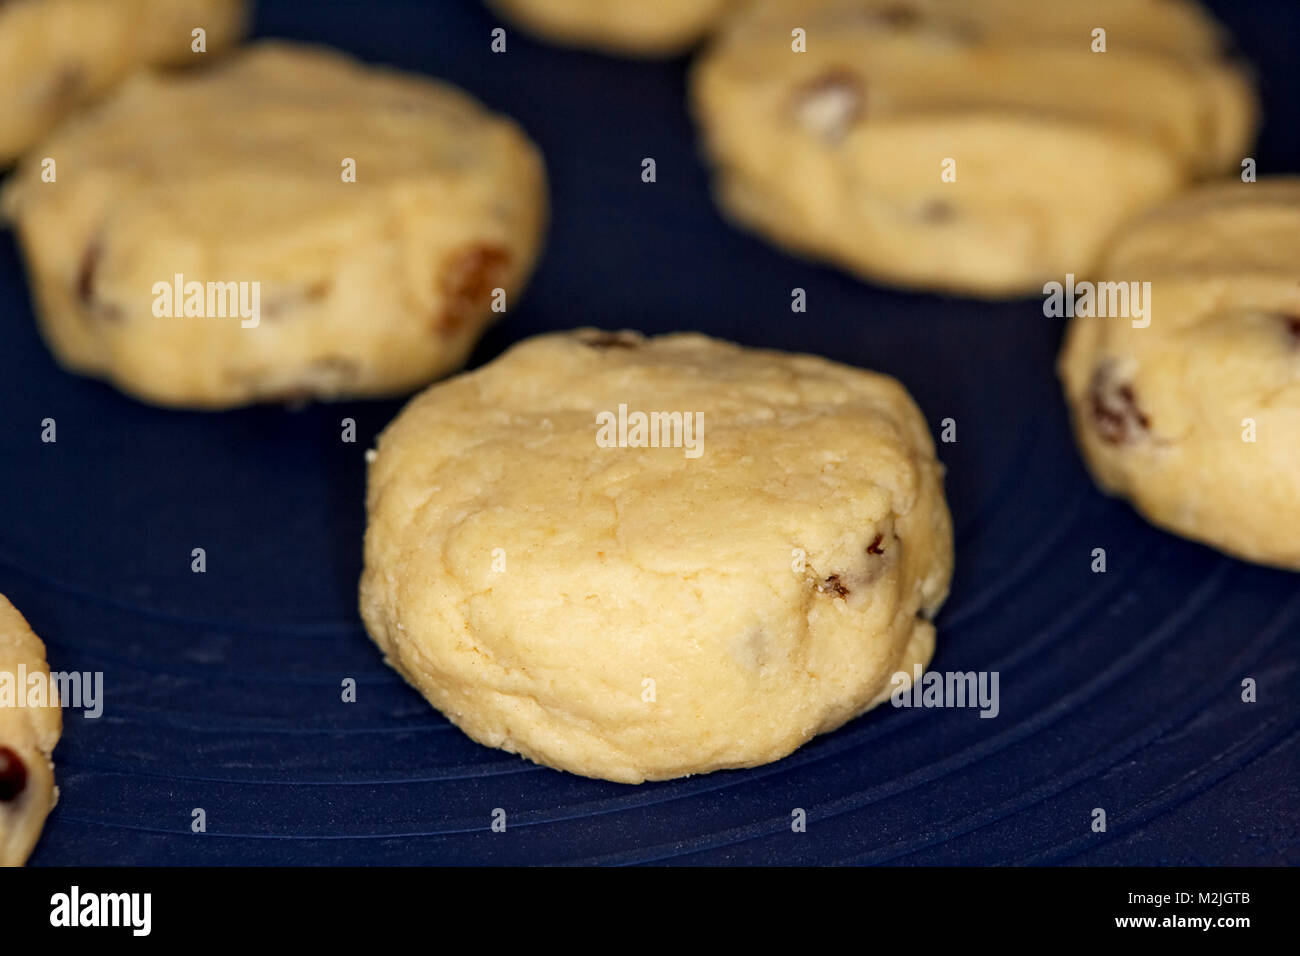 home made fruit scones known as rock cakes on a silicone baking mat ready to go into the oven - Stock Image